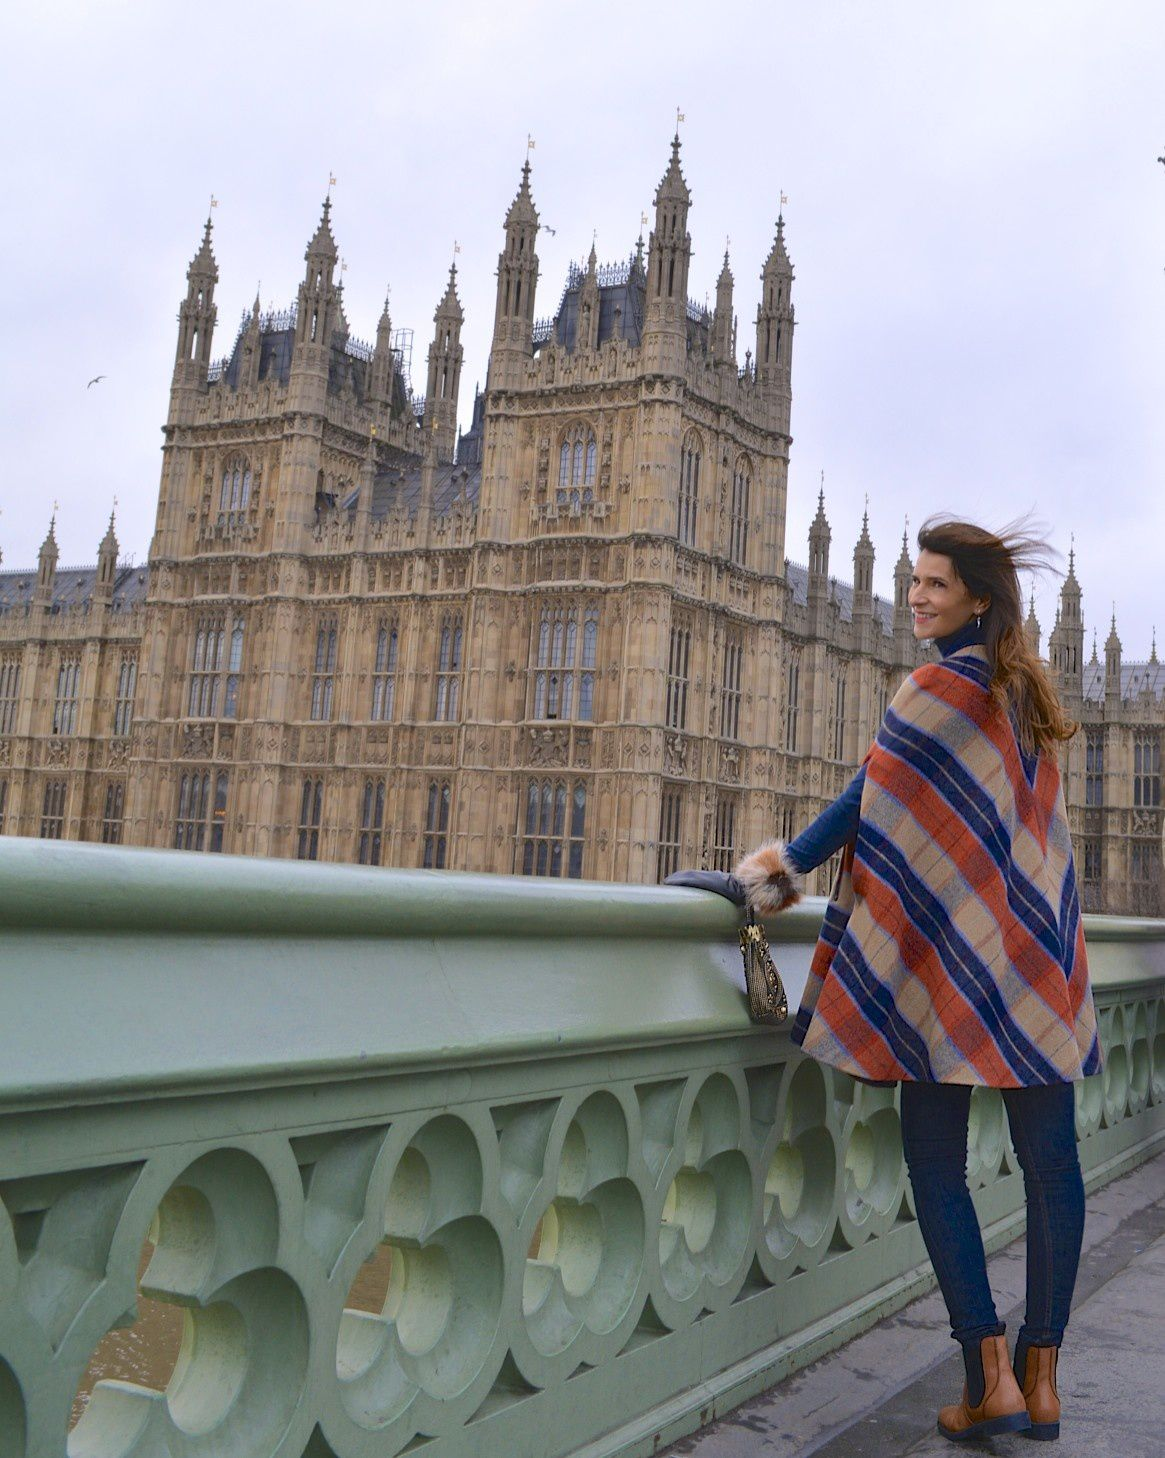 Bell cape for Big Ben 🇬🇧